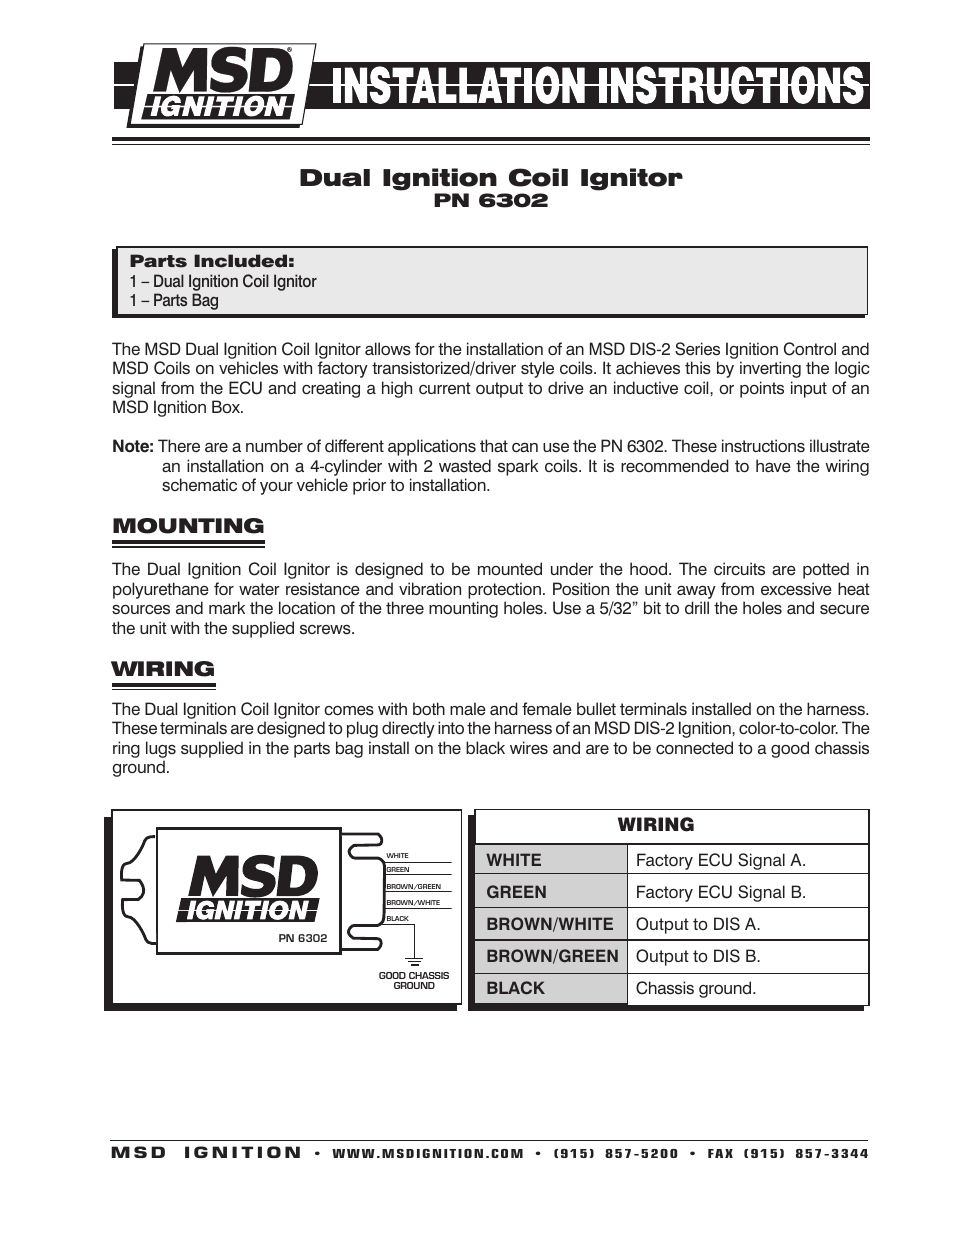 msd 6302 dis dual coil ignitor, 2 channel installation user manual fuel gauge wiring diagram msd 6302 dis dual coil ignitor, 2 channel installation user manual 2 pages